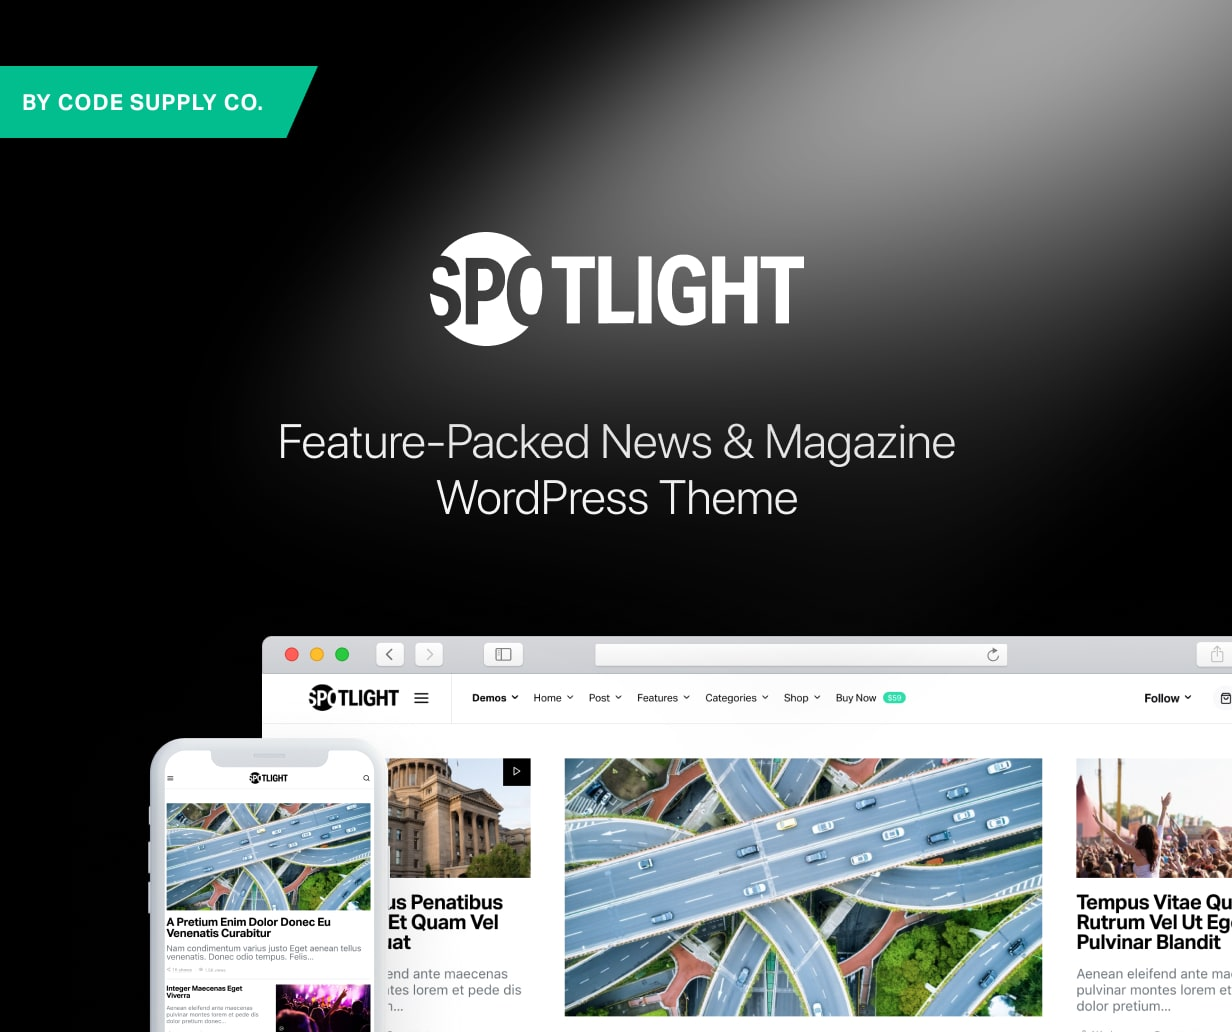 Spotlight - Feature-Packed News & Magazine WordPress Theme - 1